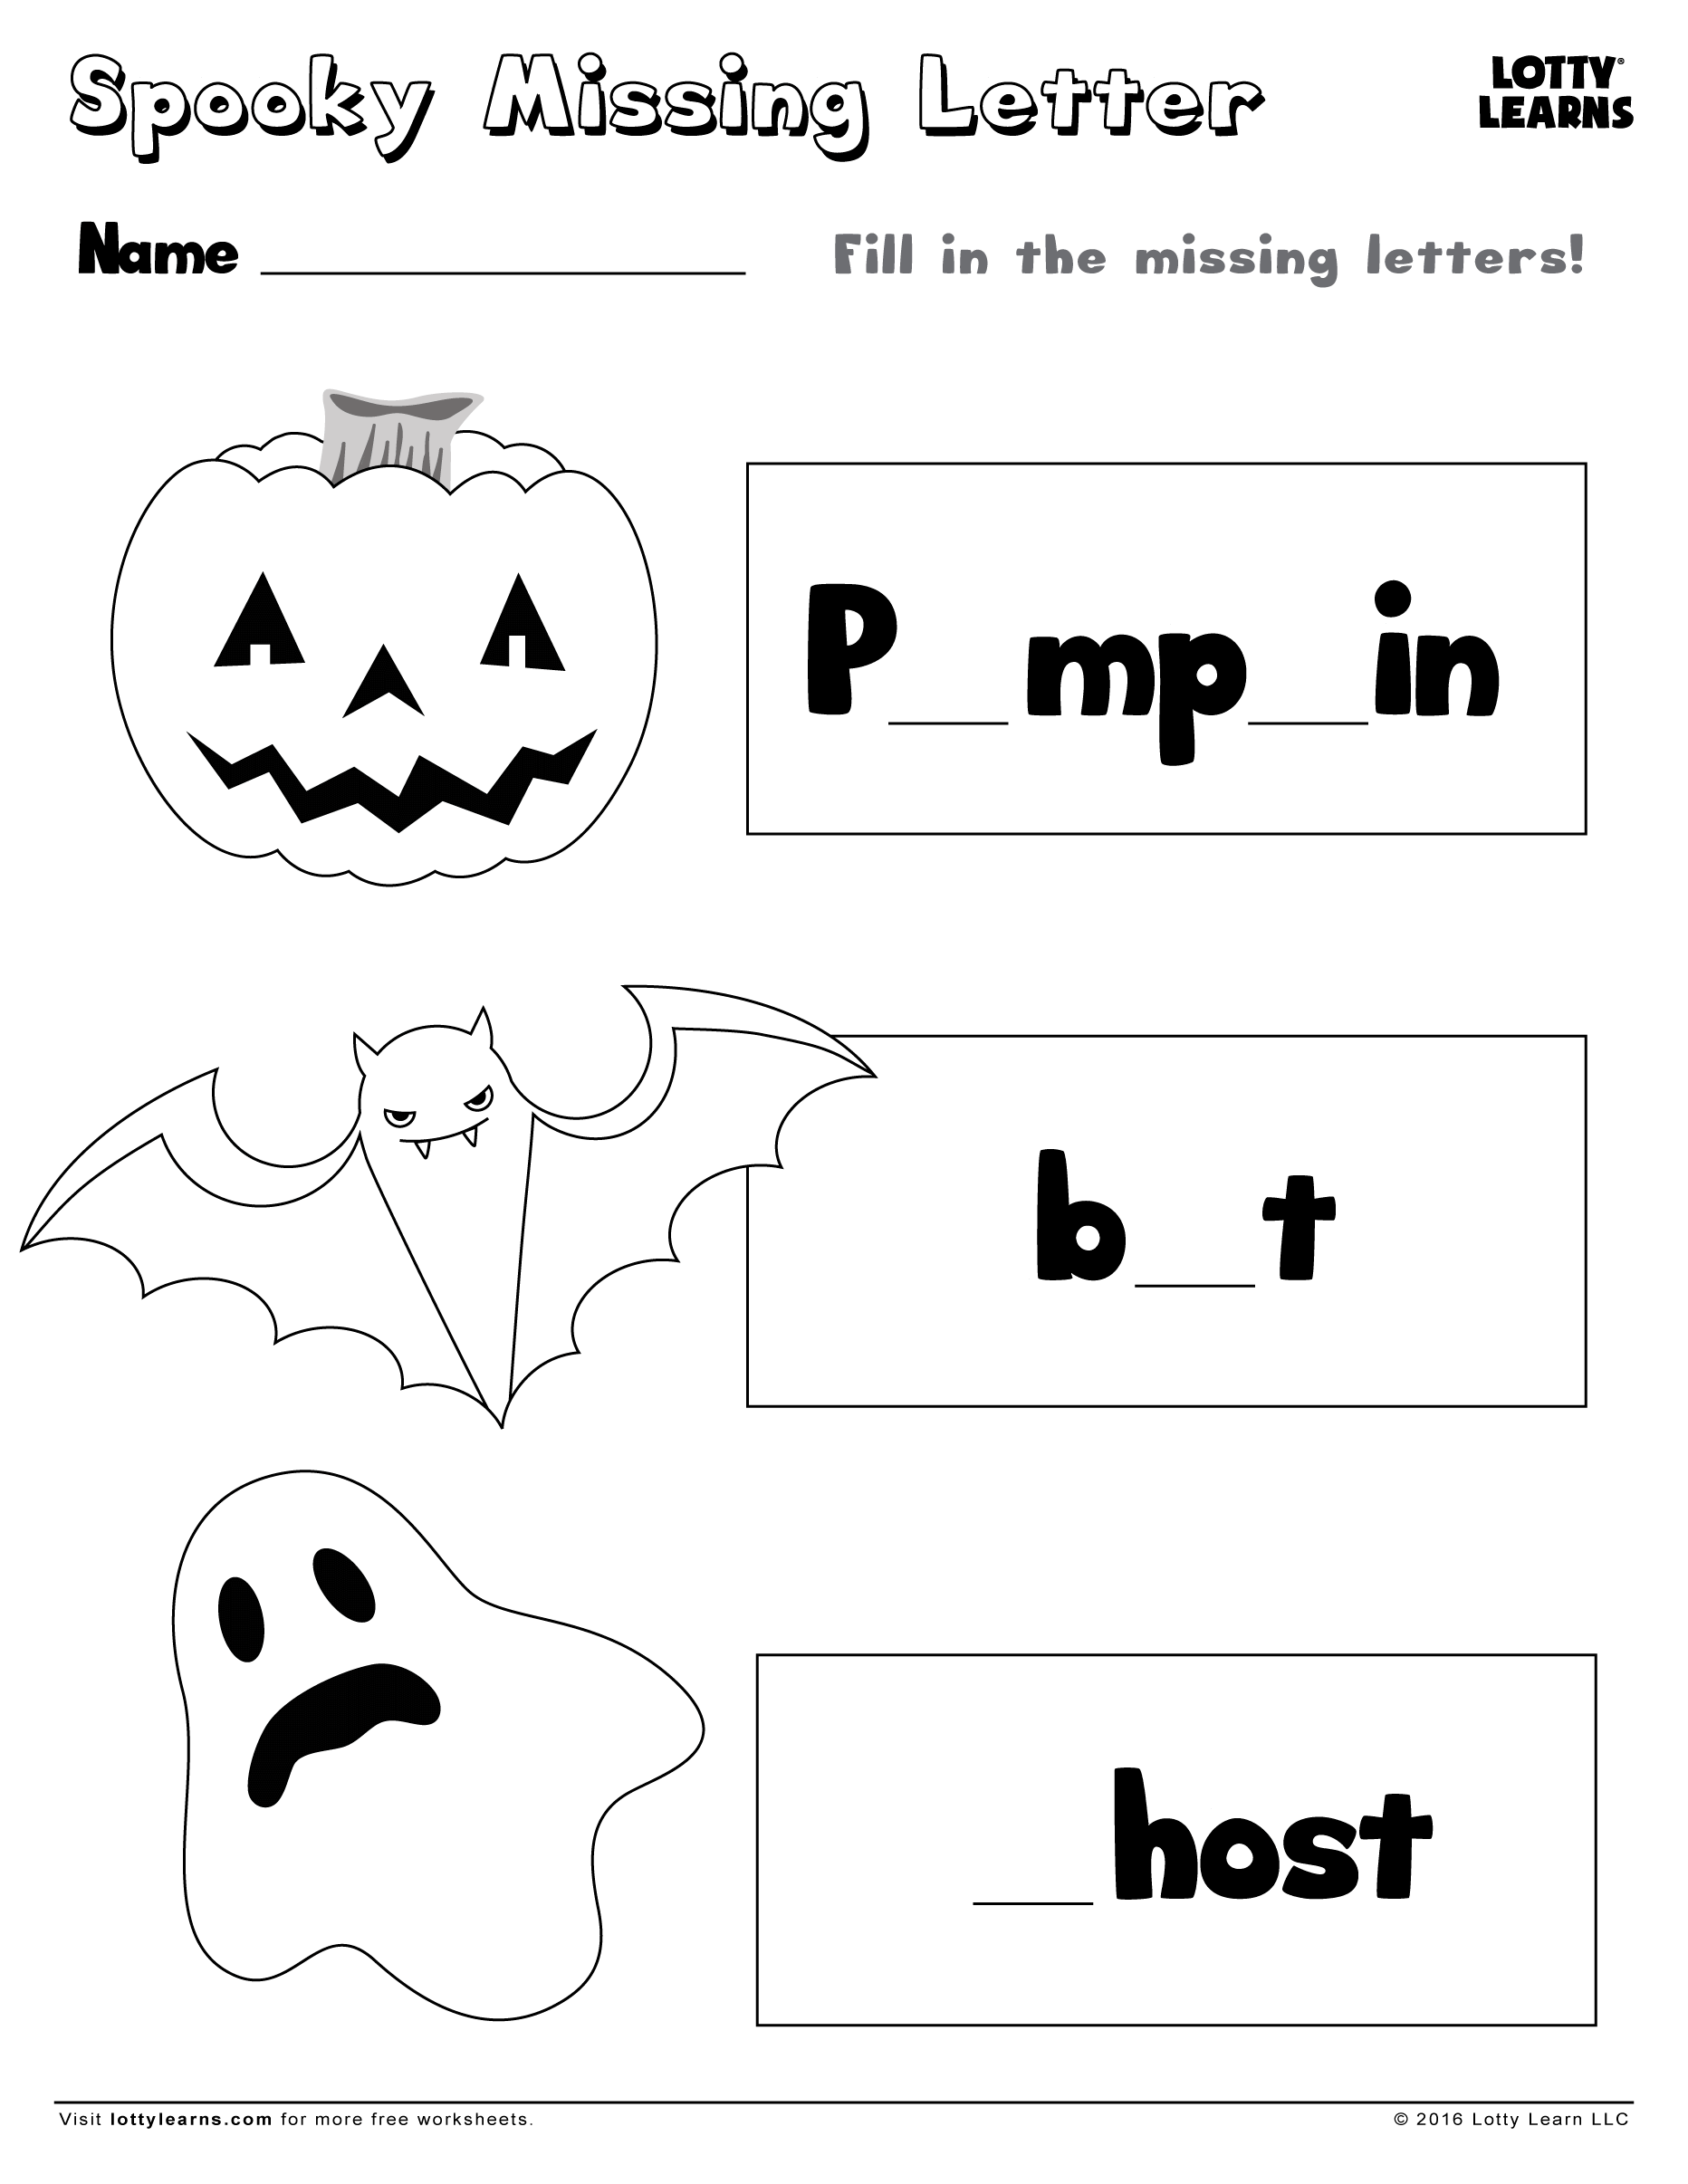 Download. Share with friends. Spooky Missing Letter